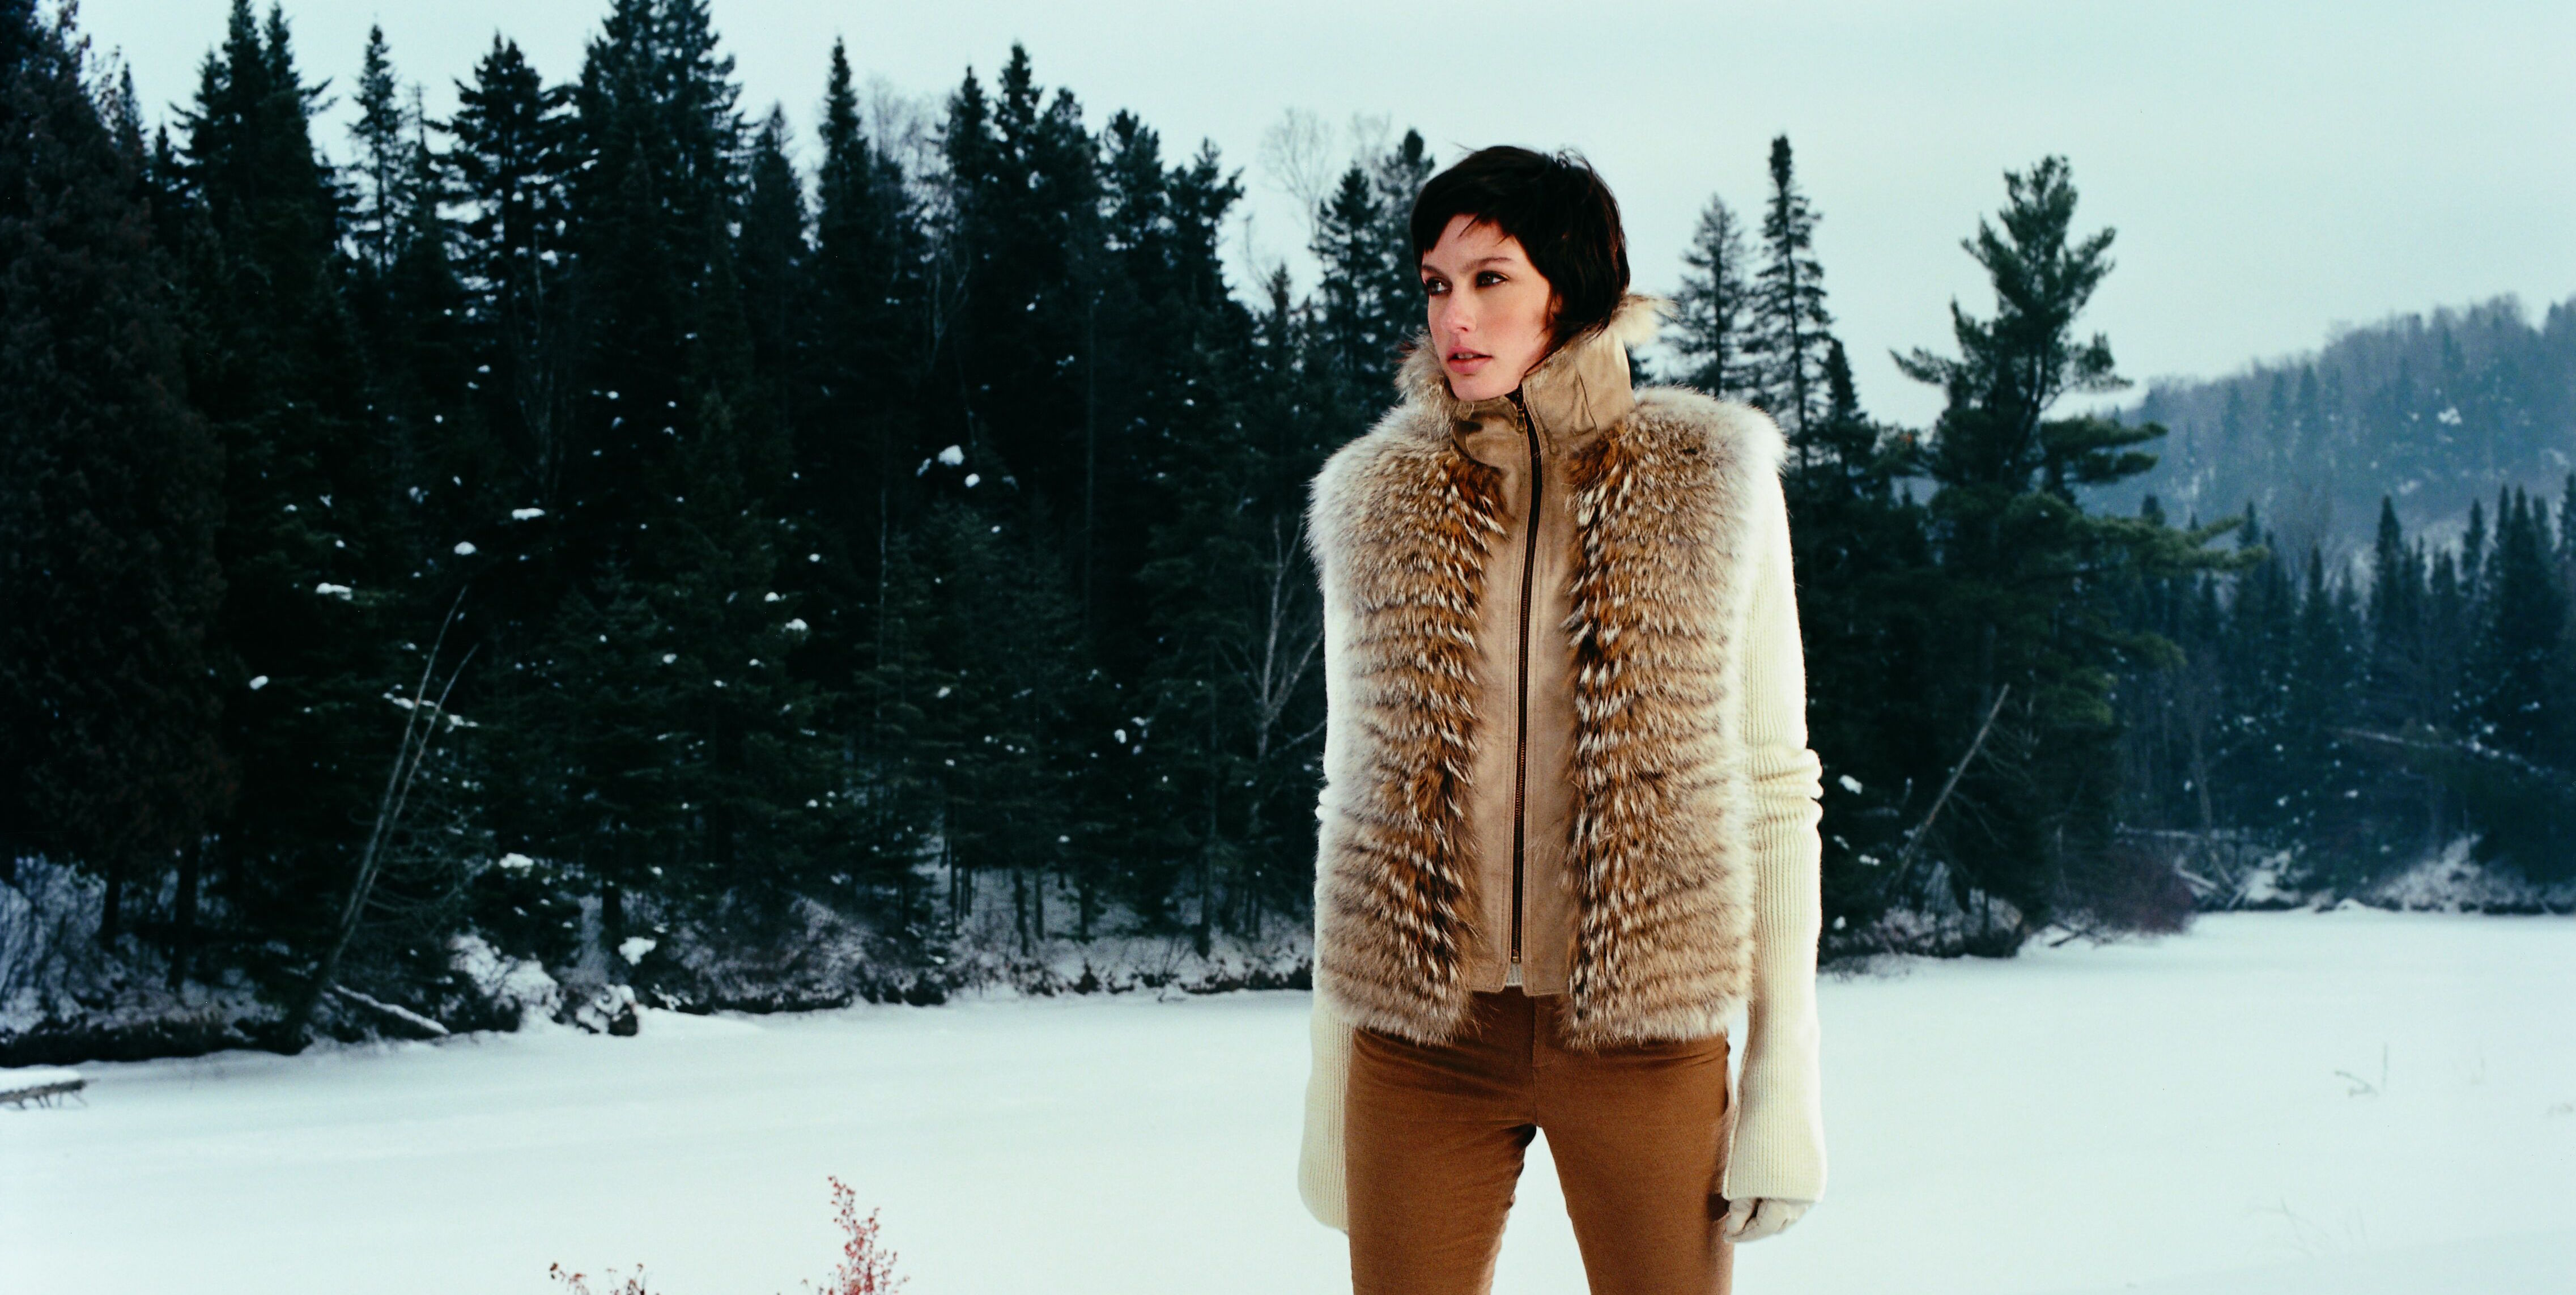 Fur coat made in Canada by Tzanidis